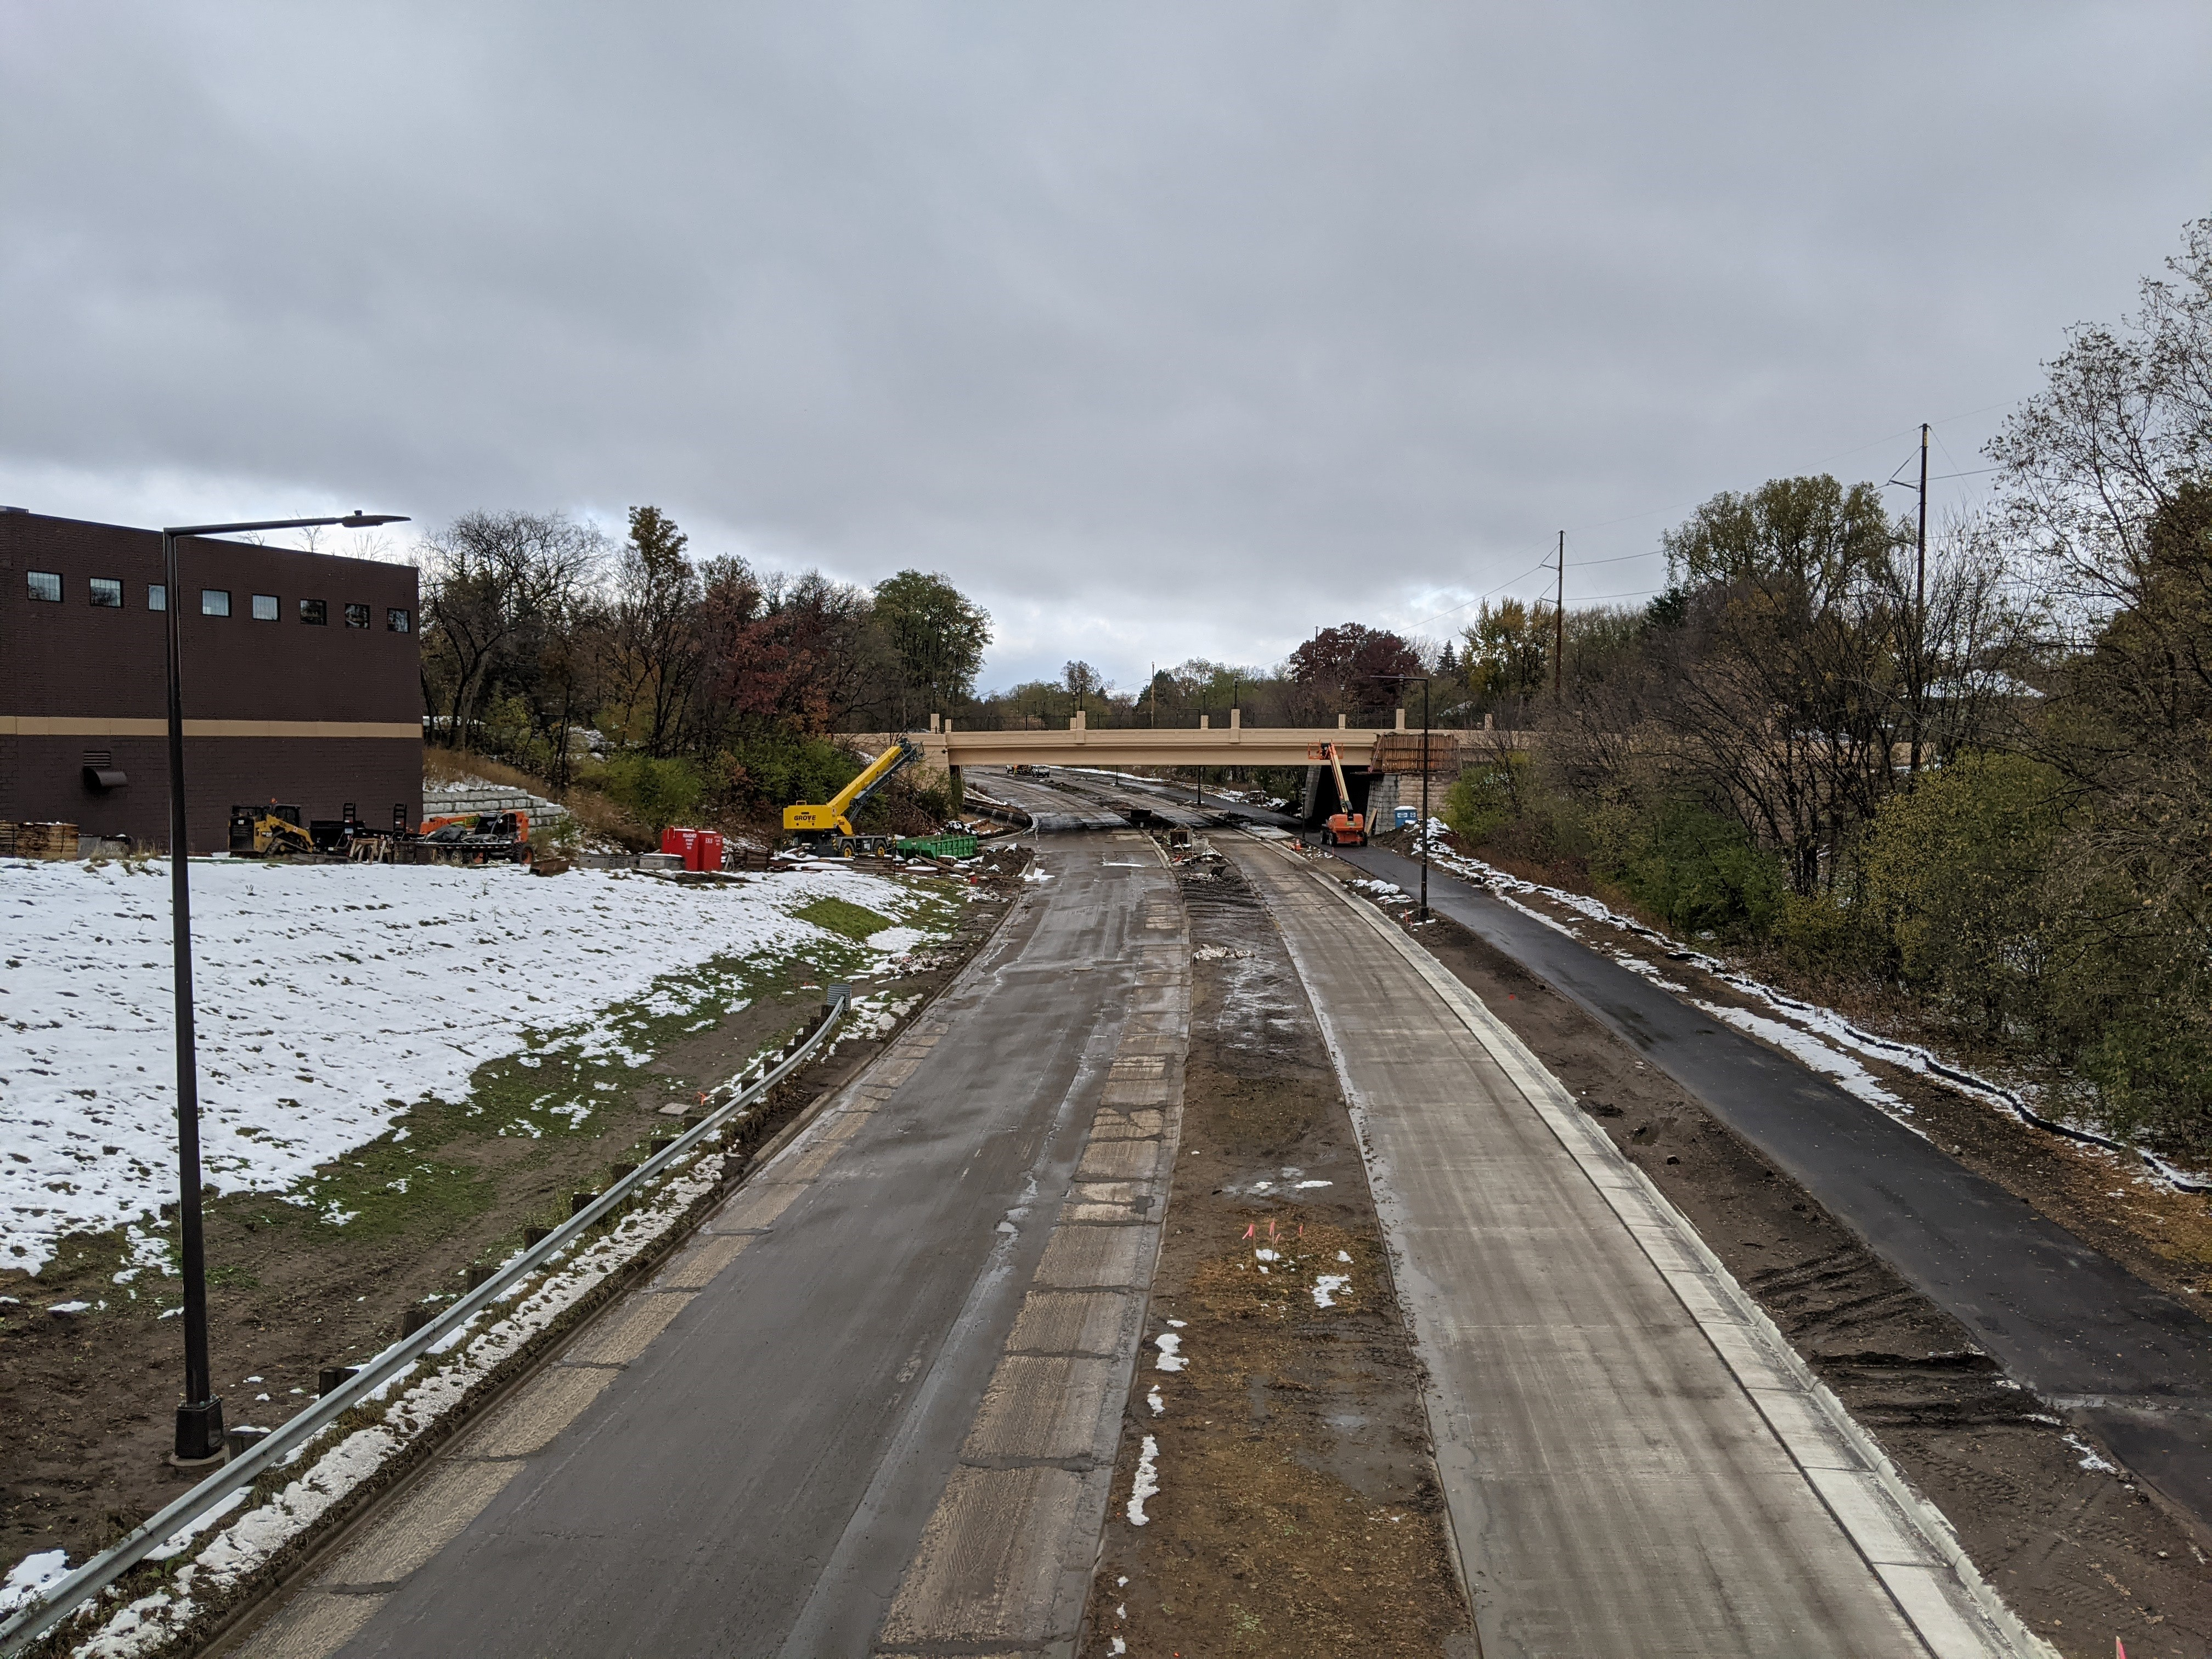 Ayd Mill Road construction photo showing the northbound view from the Grand Avenue overpass as of 10.26.20. Photo shows new trail on east side of Ayd Mill Road and new street lights.